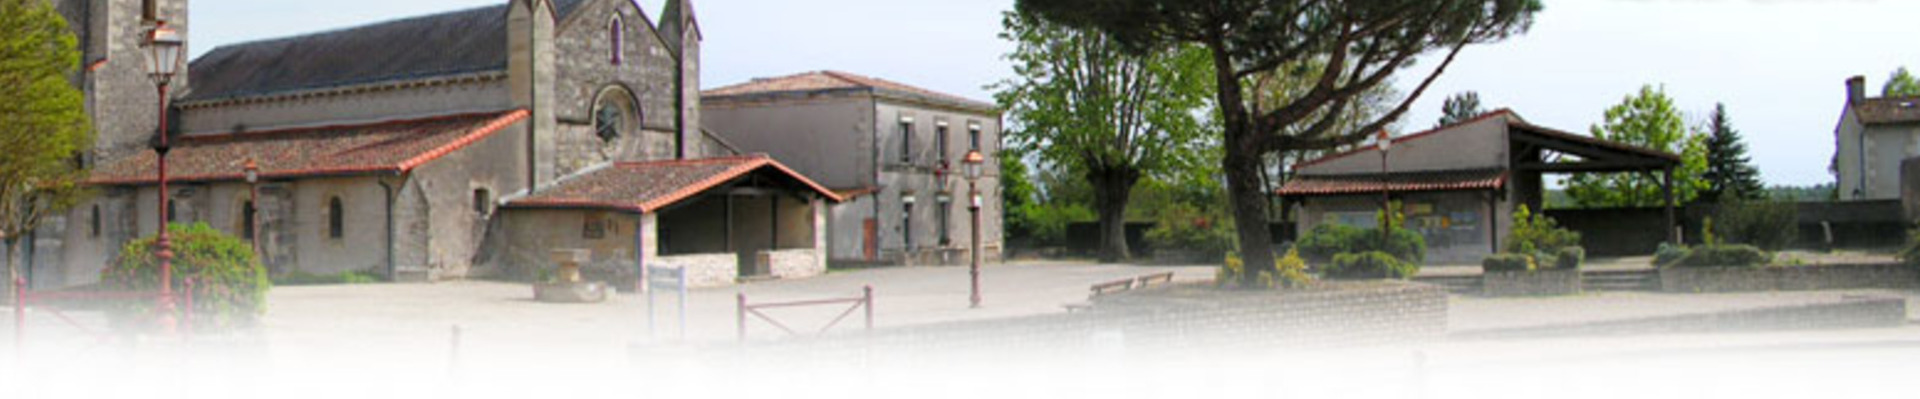 Commune de Saivres - Site officiel